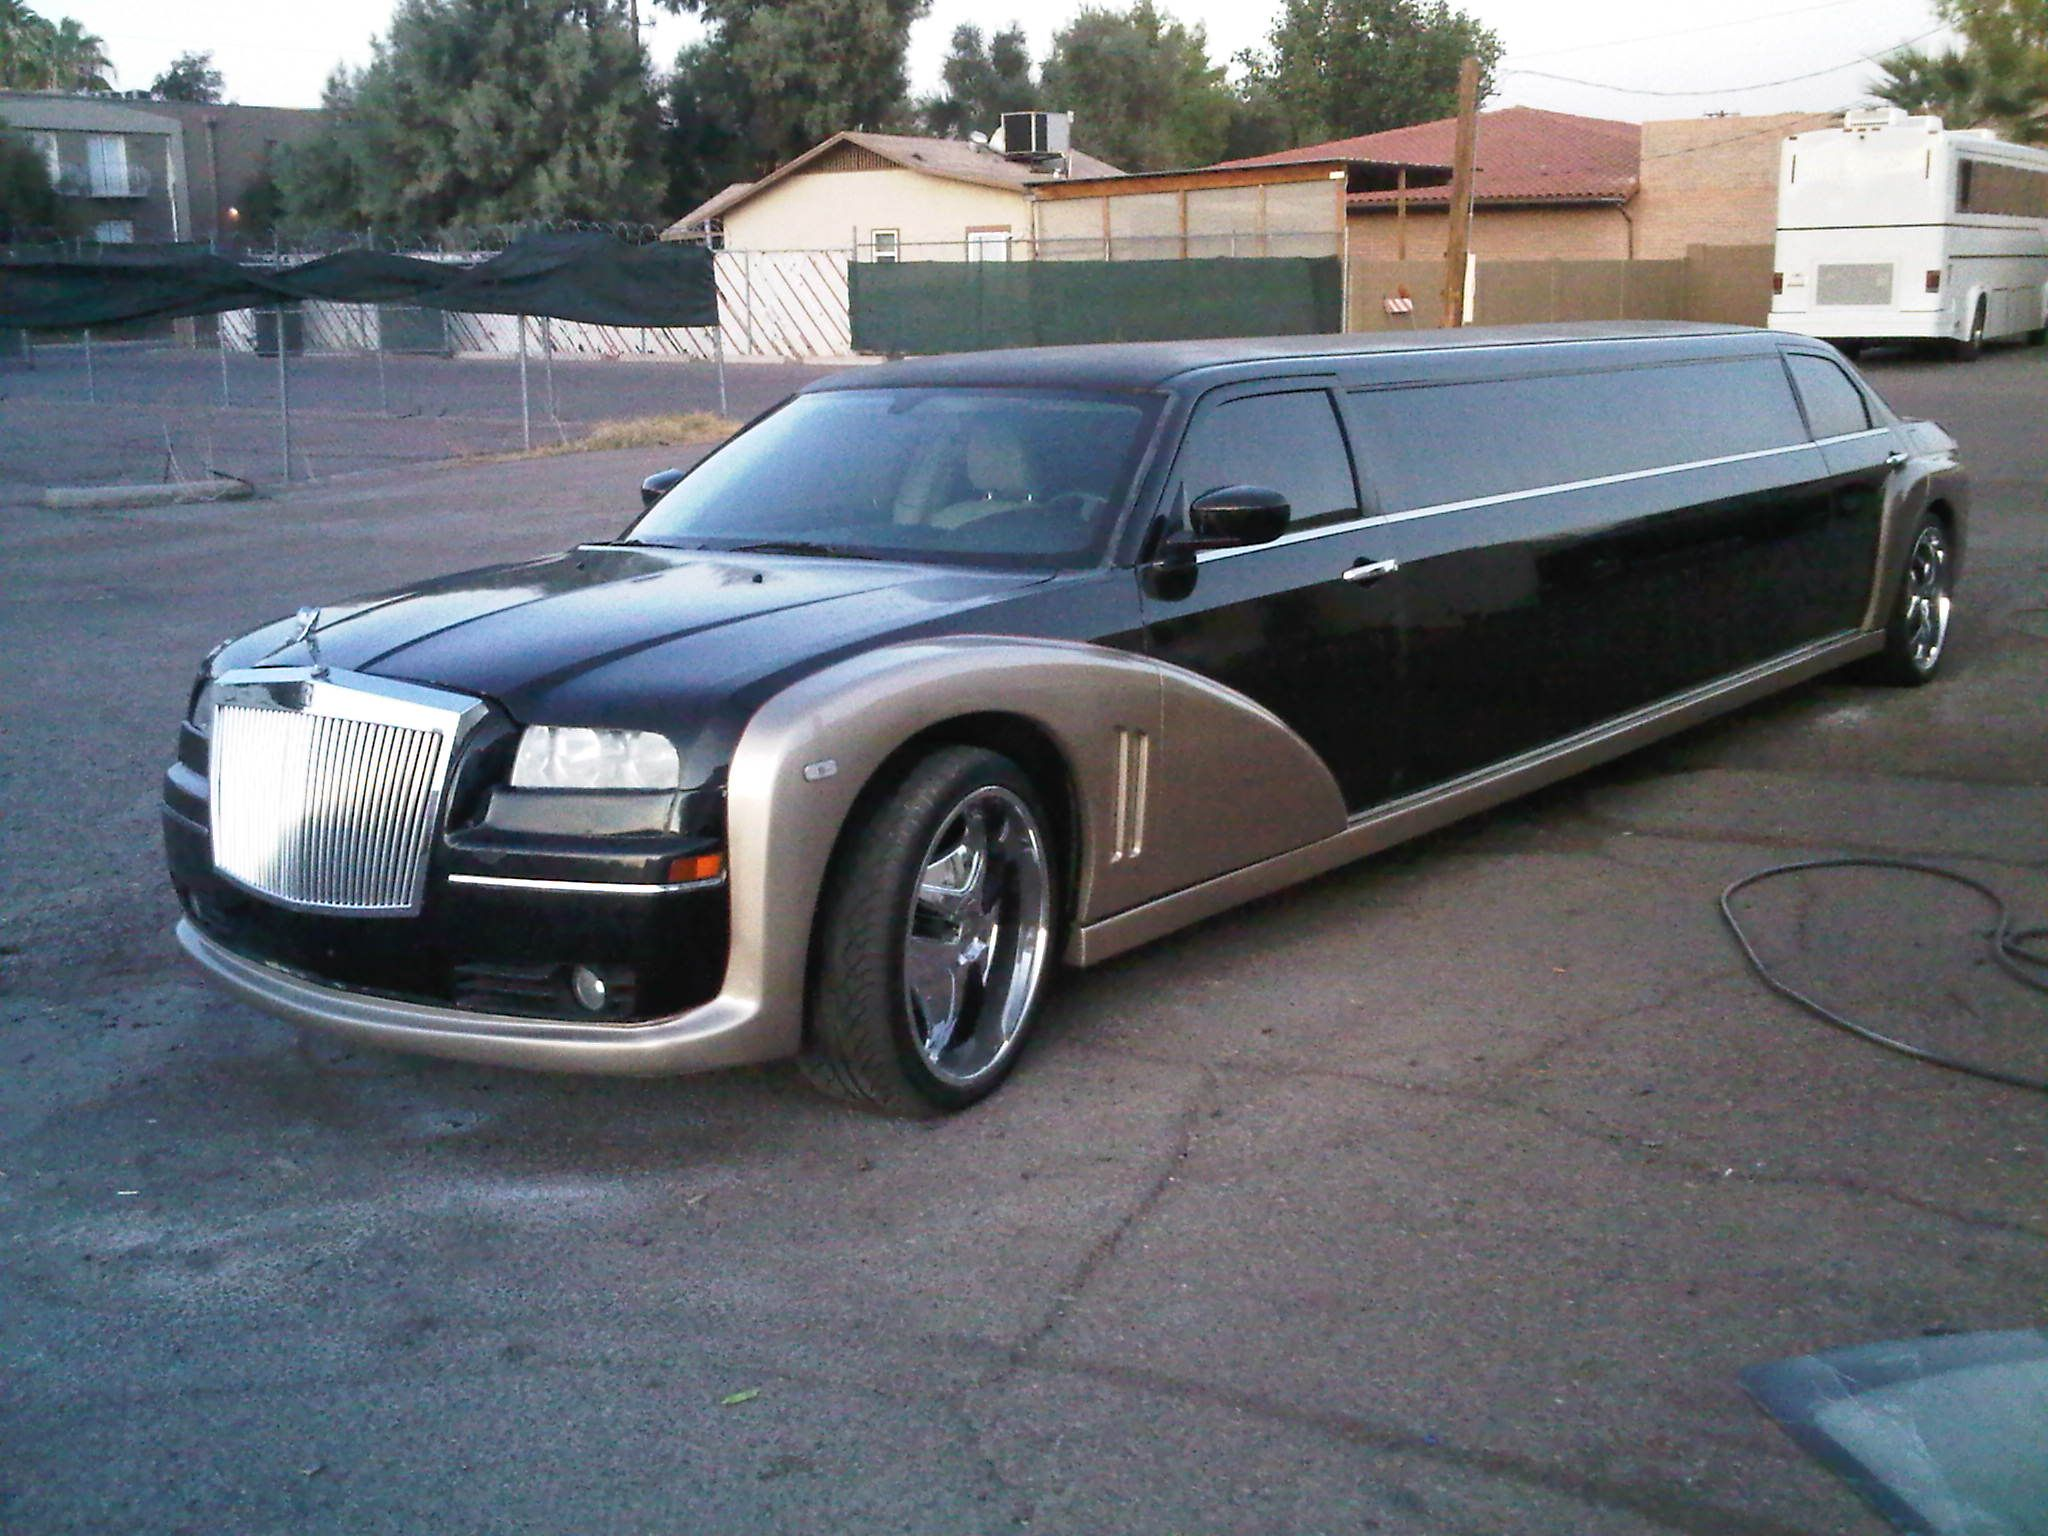 Luxury Limo Service I Discovered This Kind Of Amazing